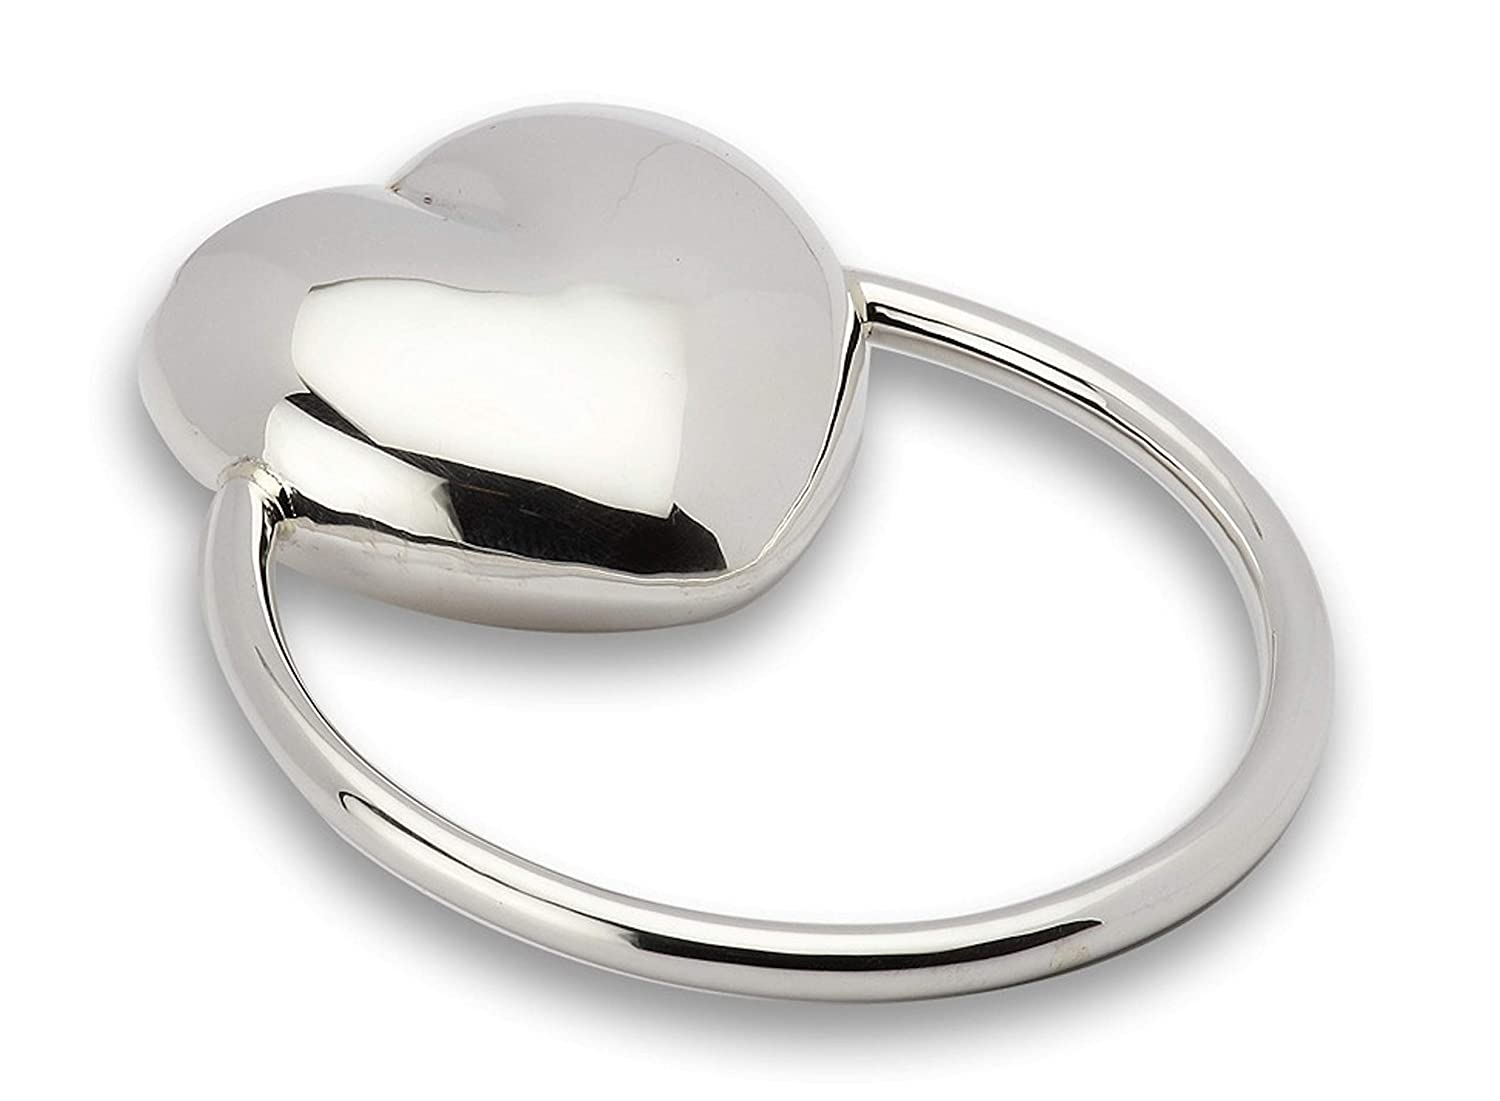 Krysaliis Sterling Silver Baby Charlotte Mall Max 77% OFF Heart Rattle Teether